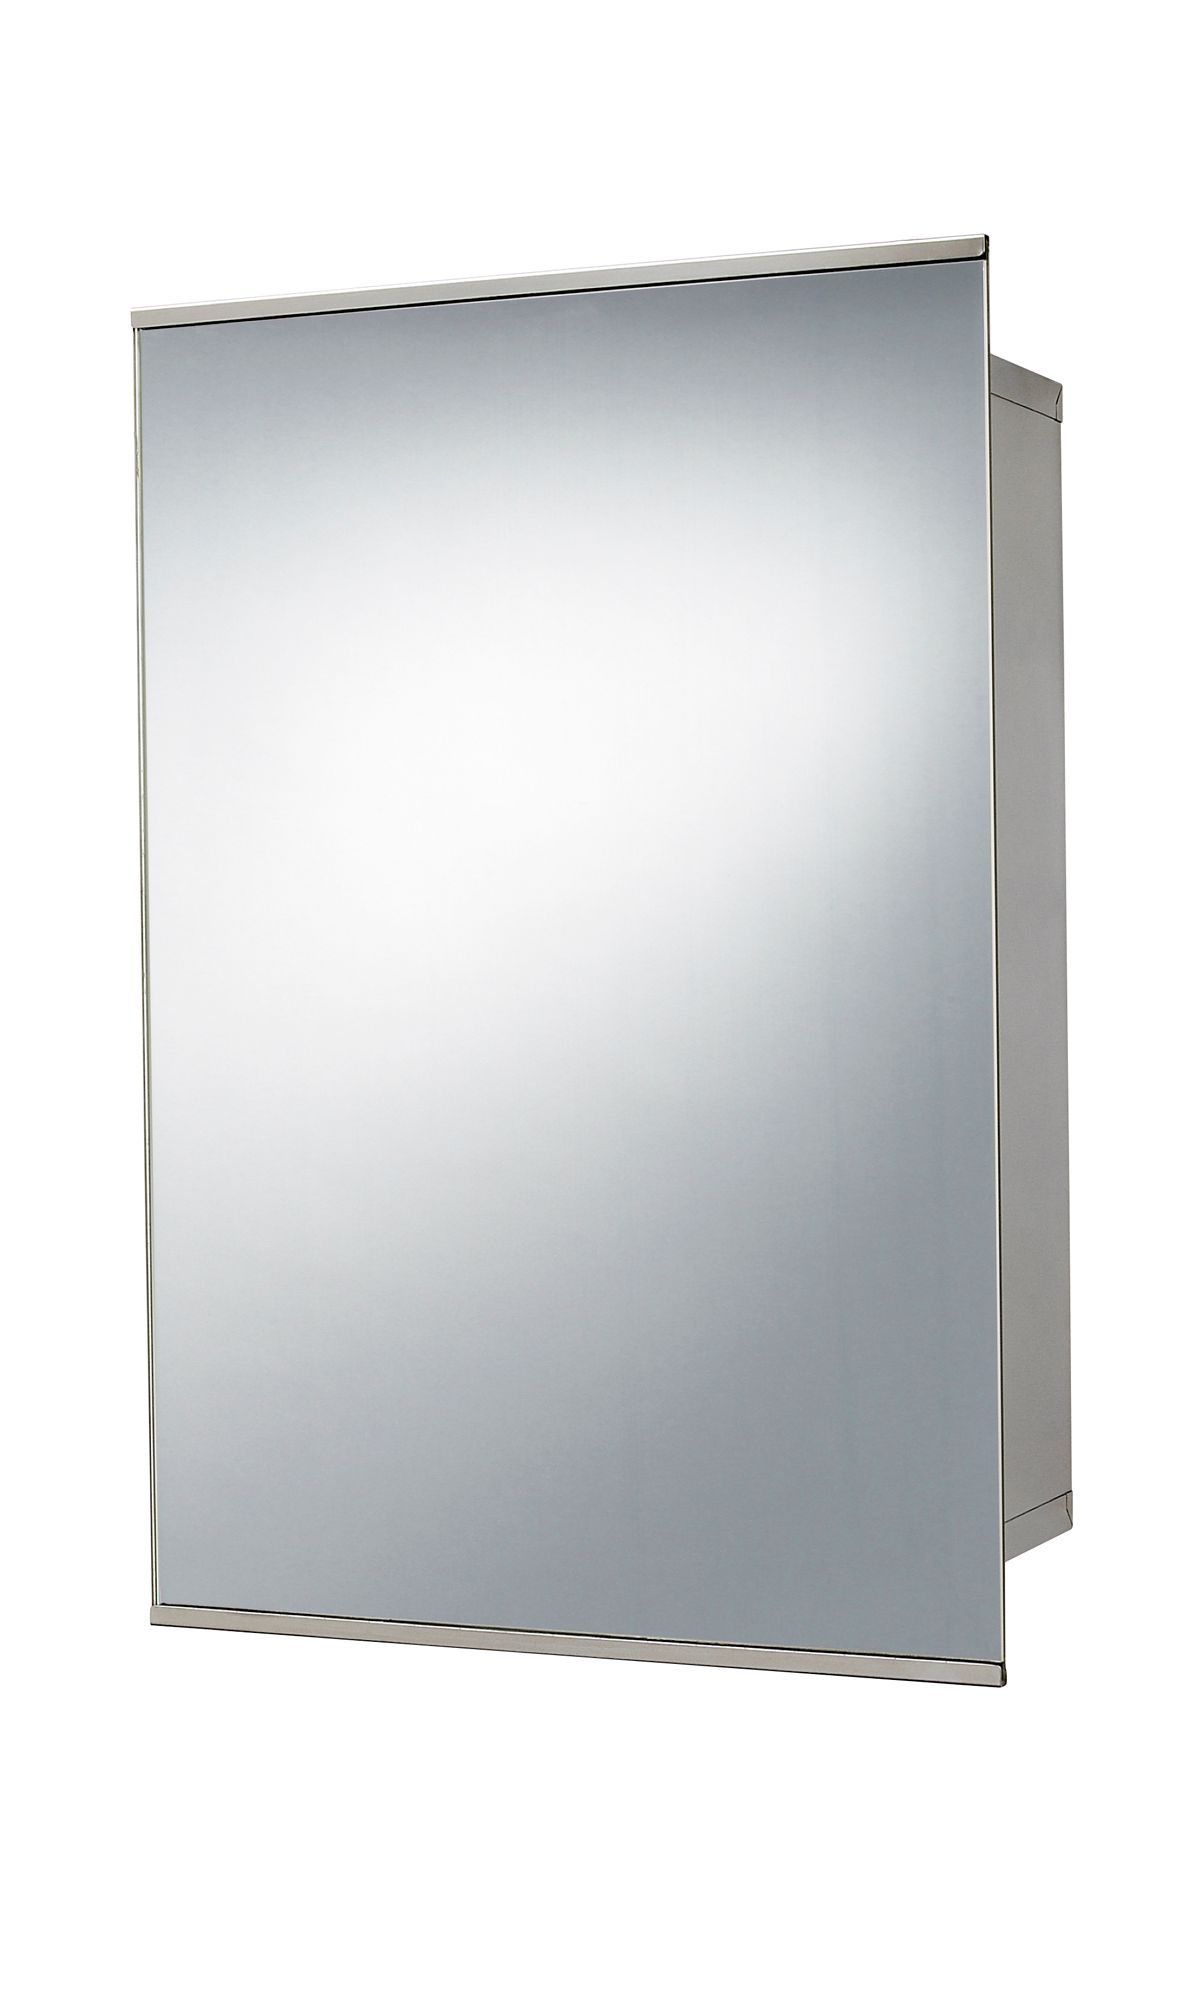 Fonteno Sliding Door Mirror Cabinet Departments Diy At B Q Mirror Cabinets Mirror Sliding Doors